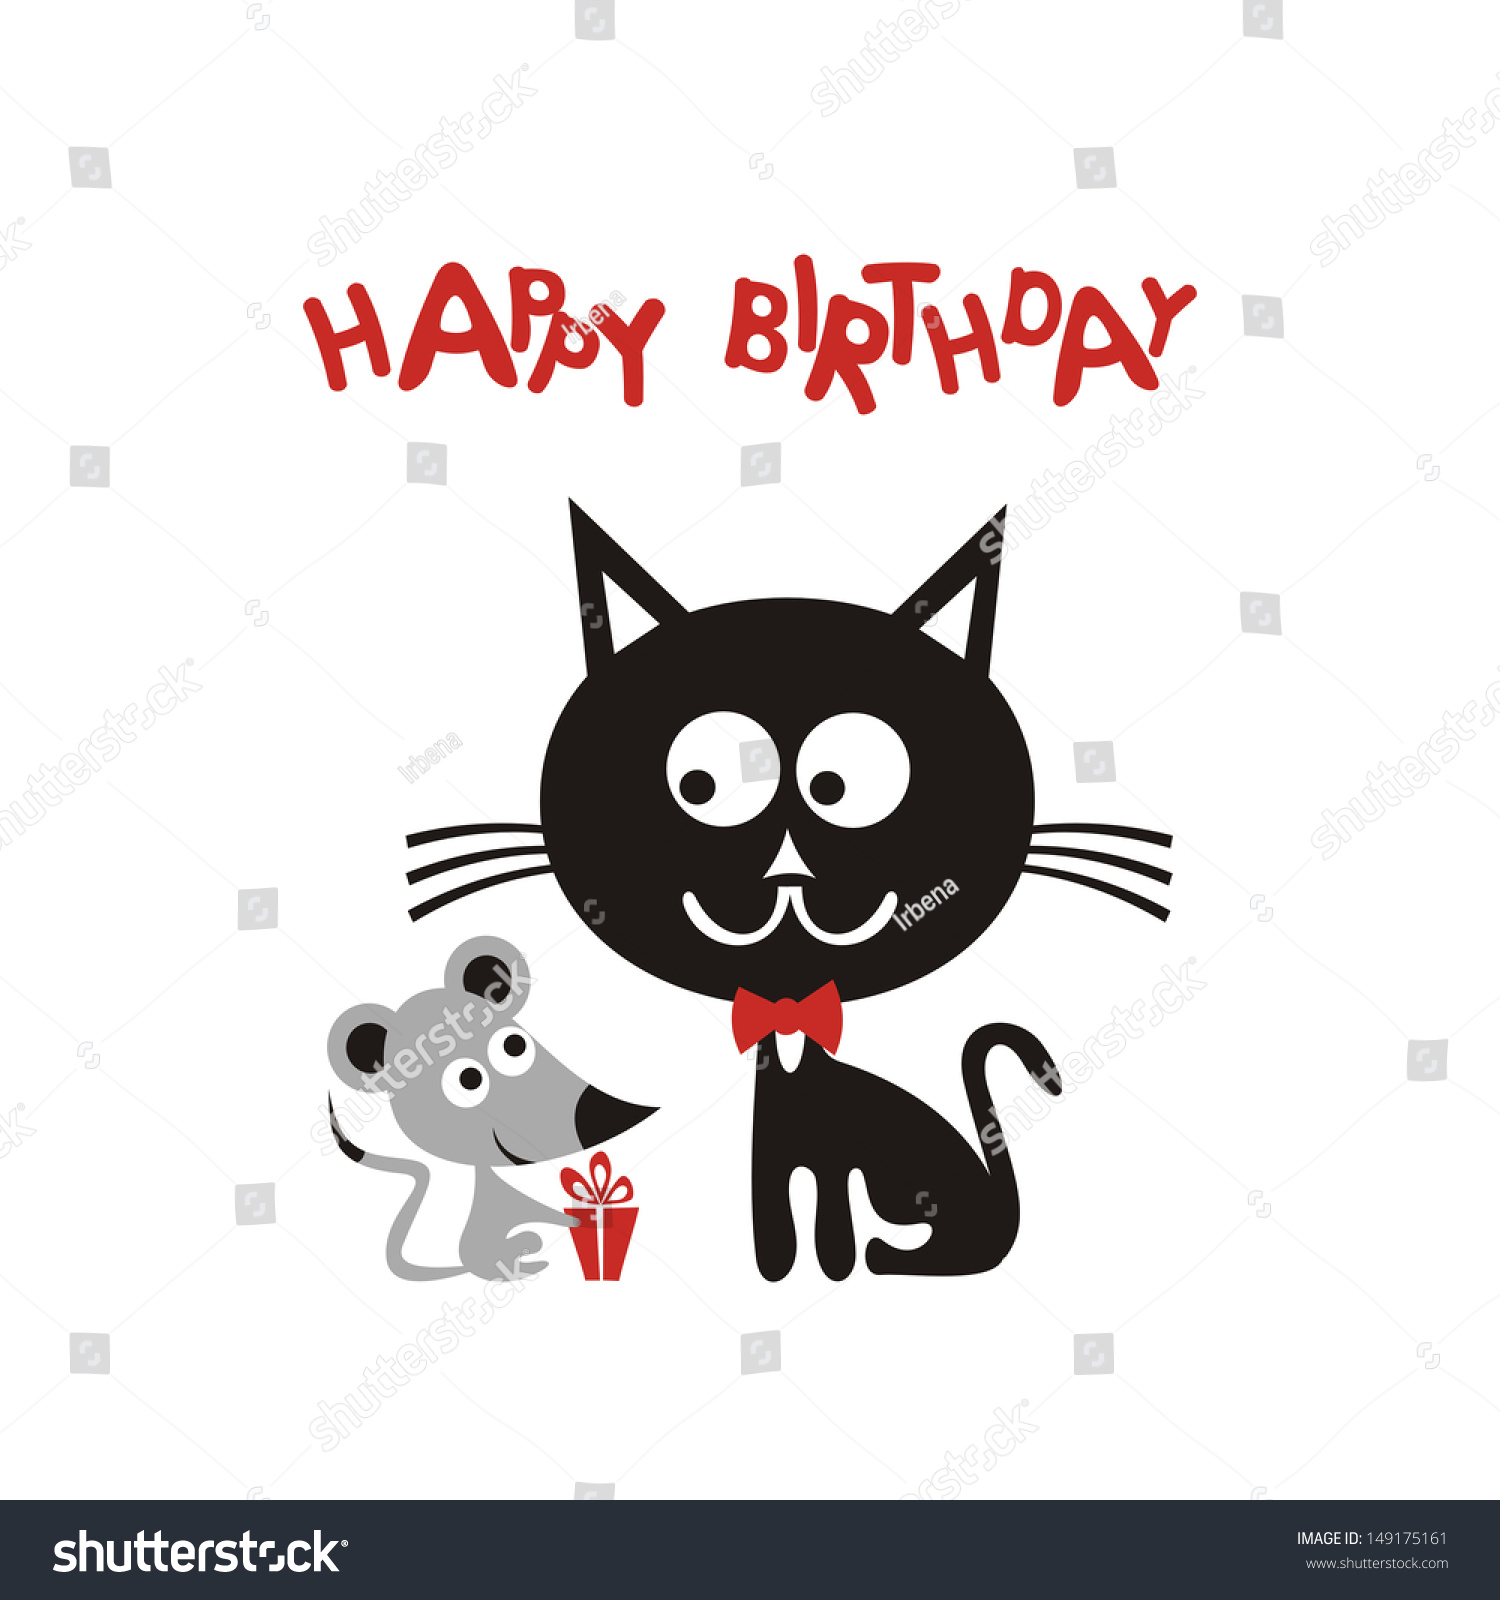 Happy birthday greeting card cartoon cute stock vector royalty free happy birthday greeting card with cartoon cute mouse and black cat gift vector illustration m4hsunfo